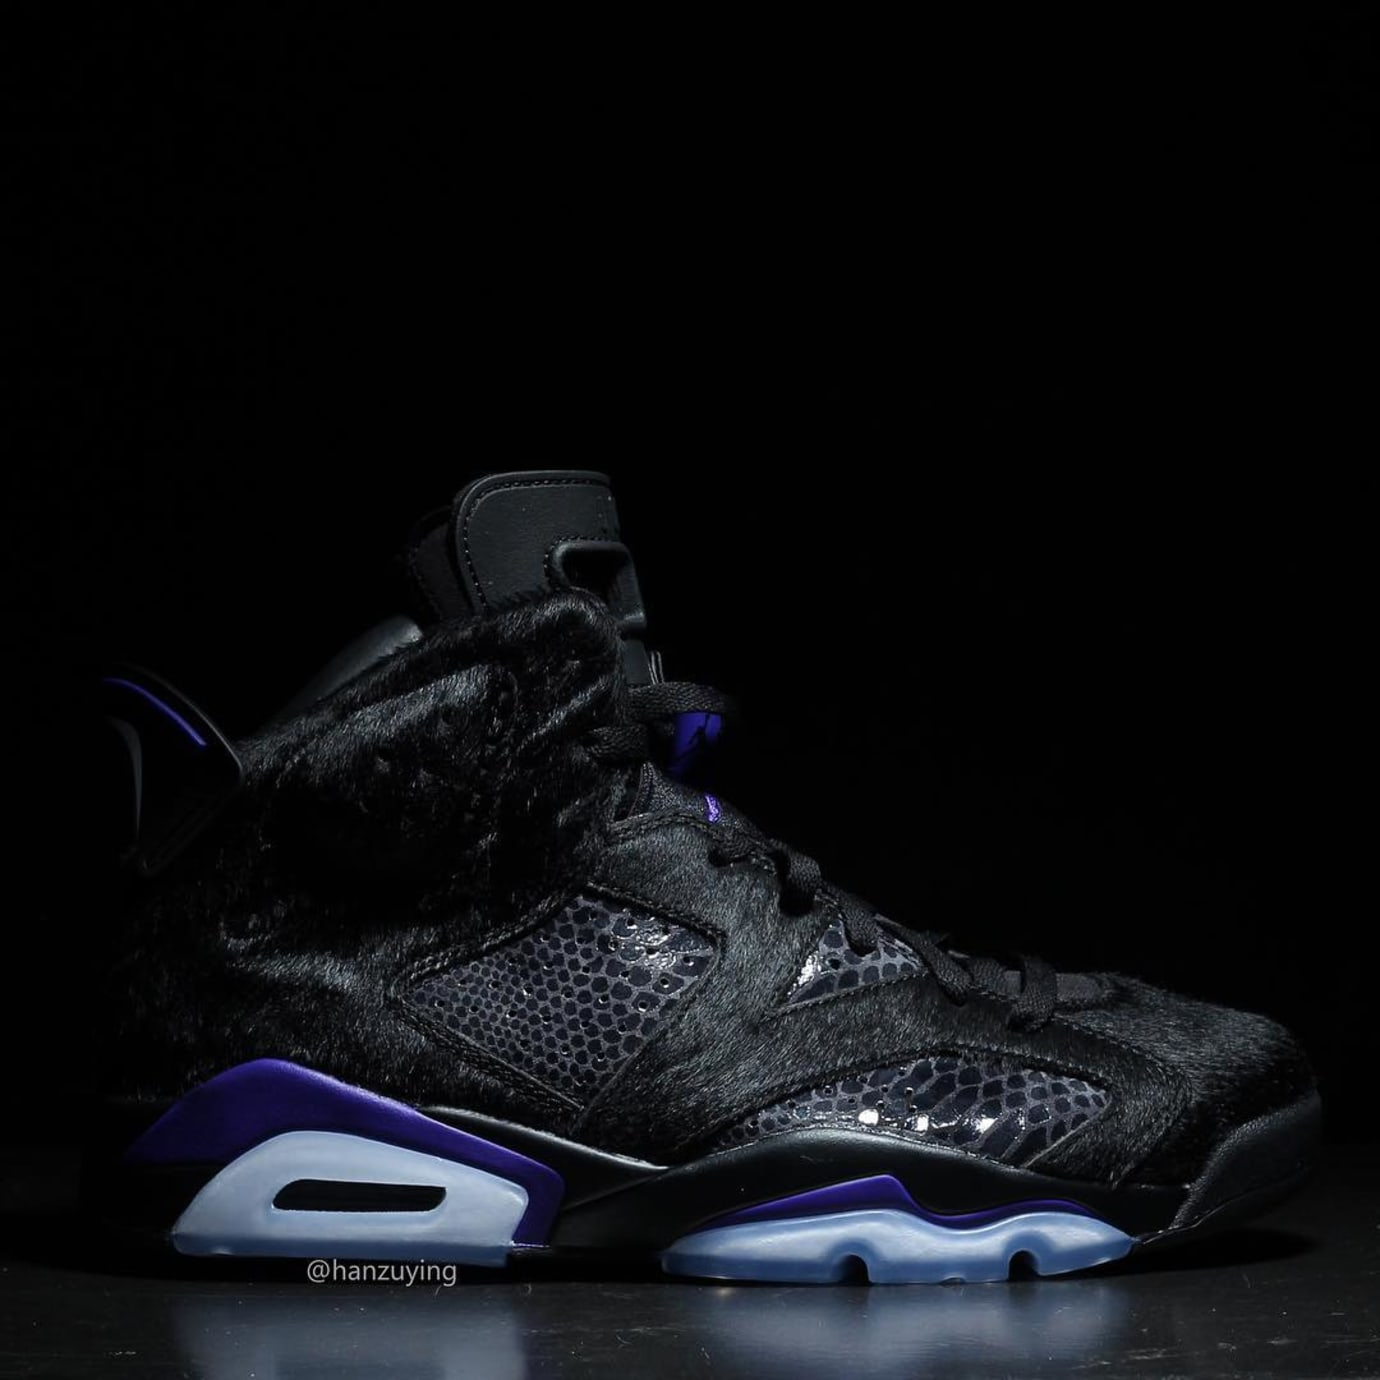 50160205d6b Air Jordan 6 VI Cow Fur Snakeskin Black Purple Release Date AR2257-005 Right